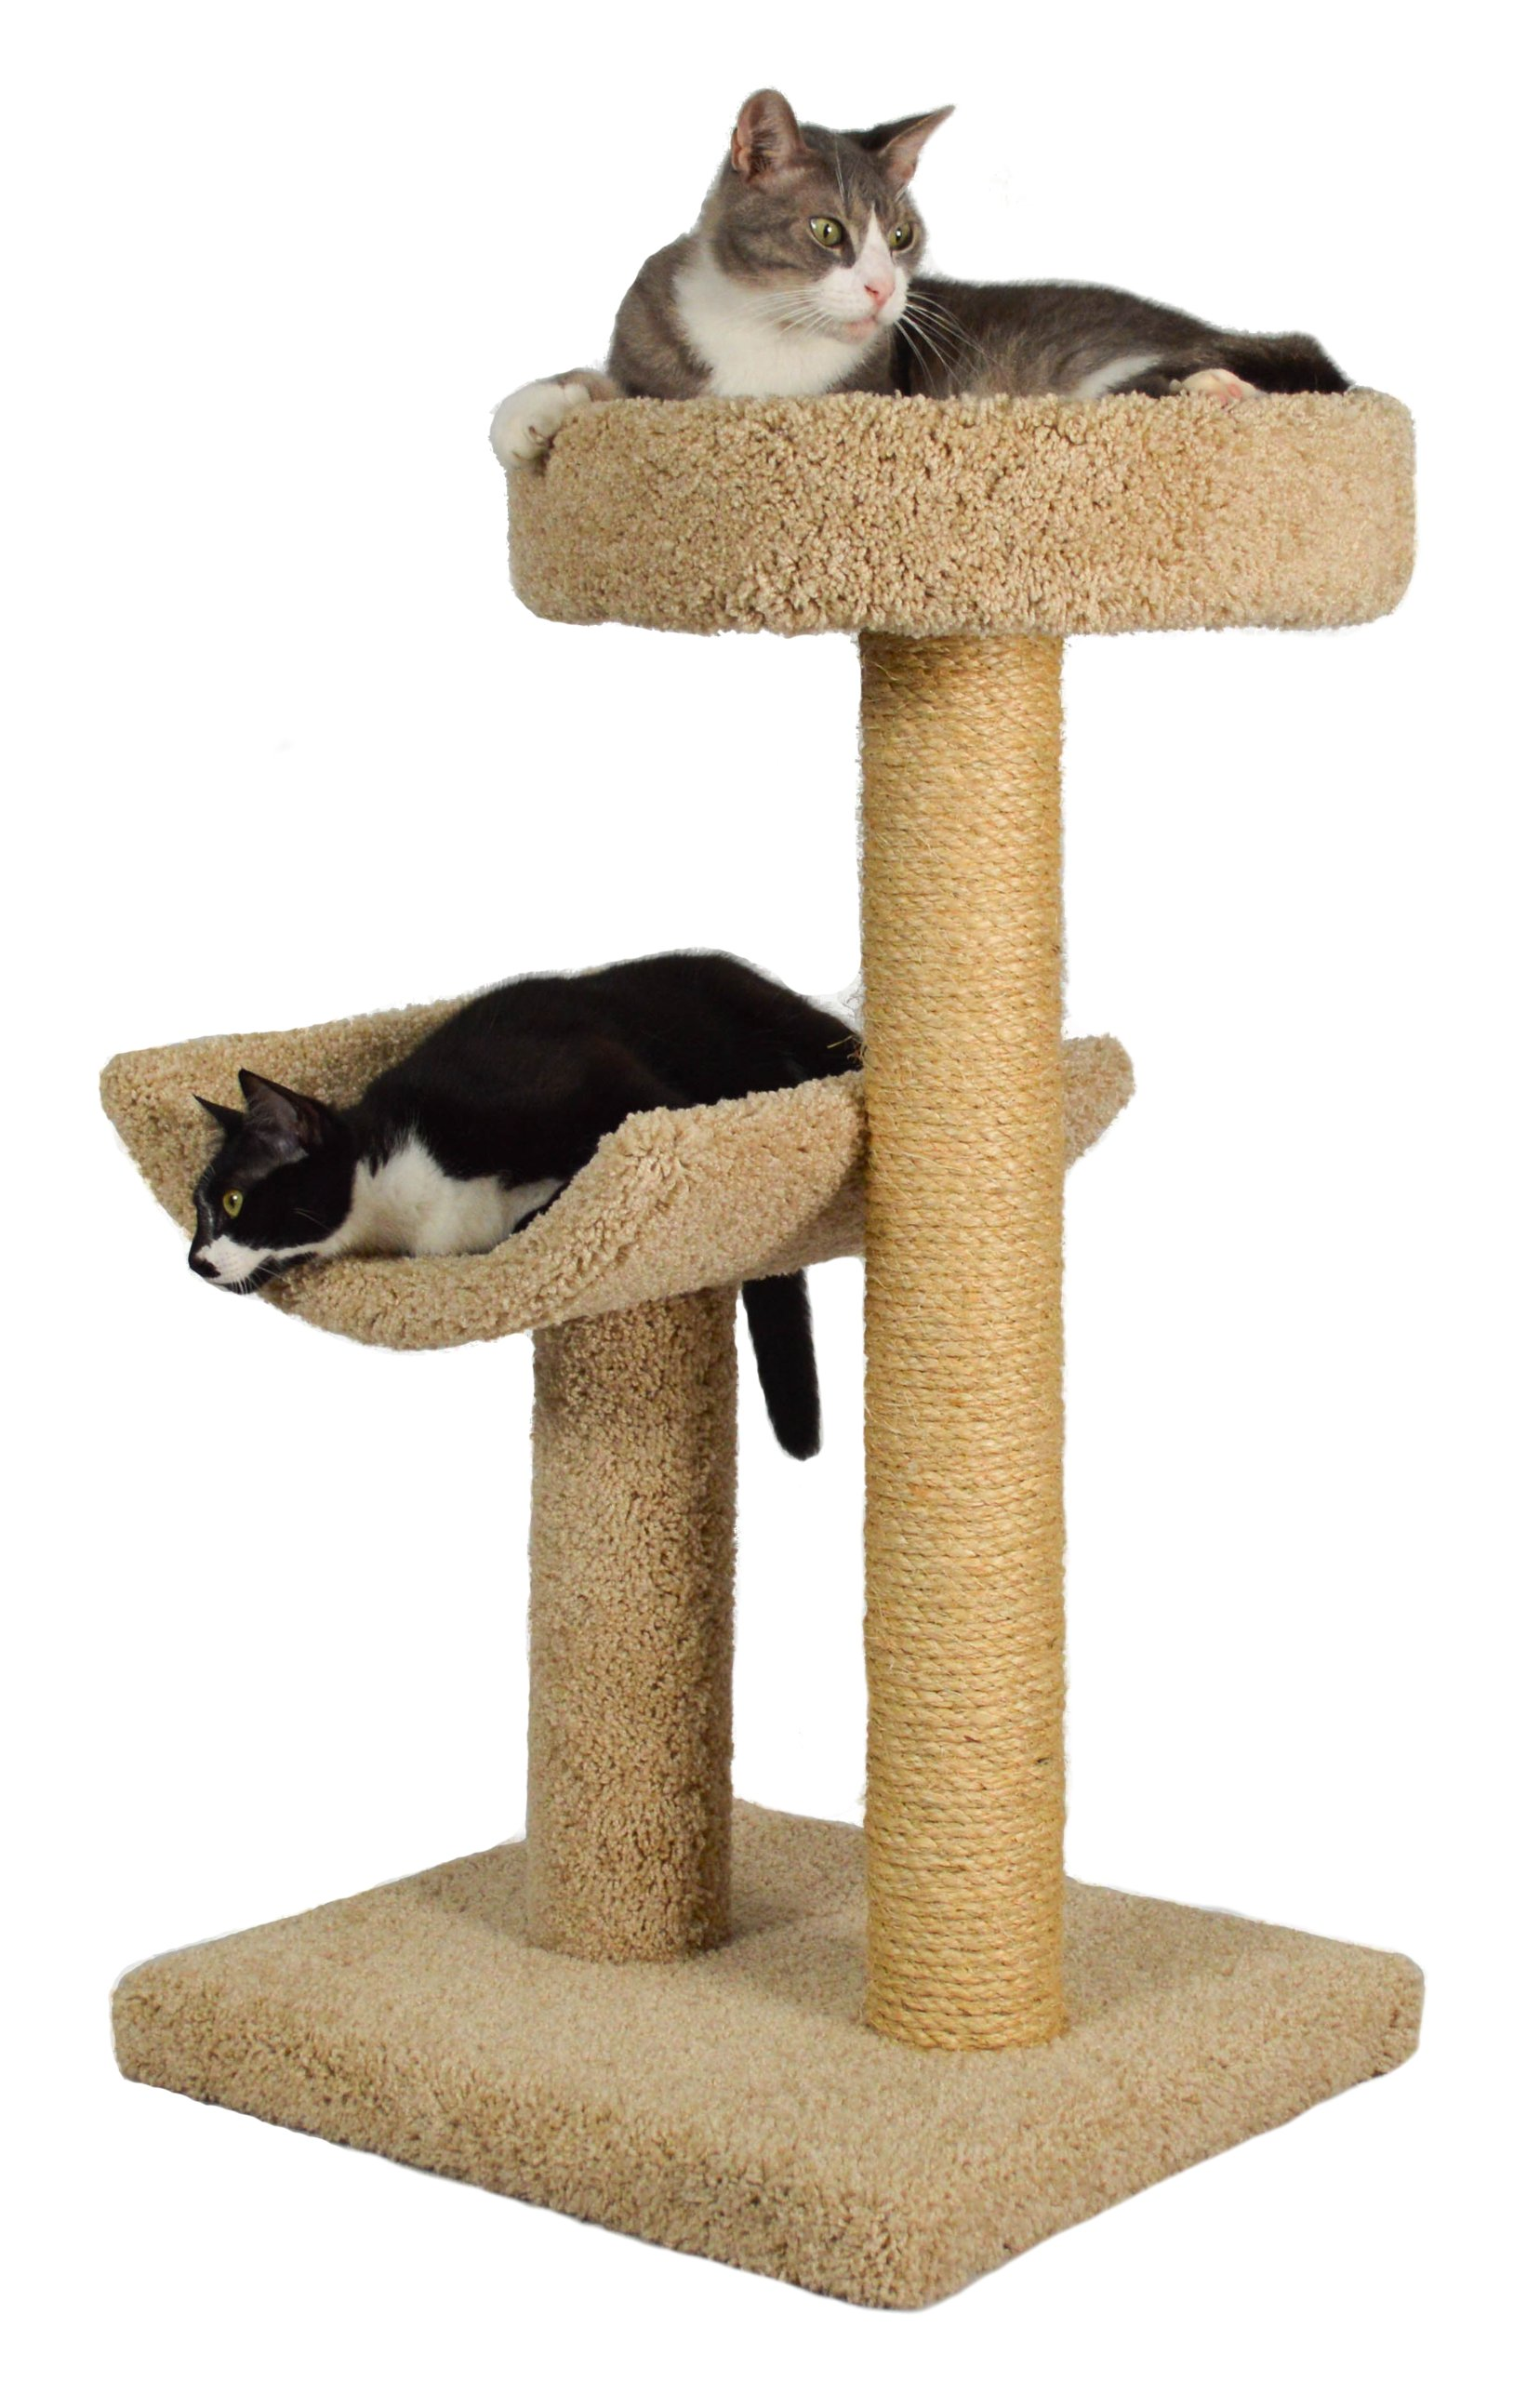 Molly and Friends ''Simple Sleeper'' Premium Handmade 2-Tier Cat Tree with Sisal, Model 23, Beige, Colors May Vary